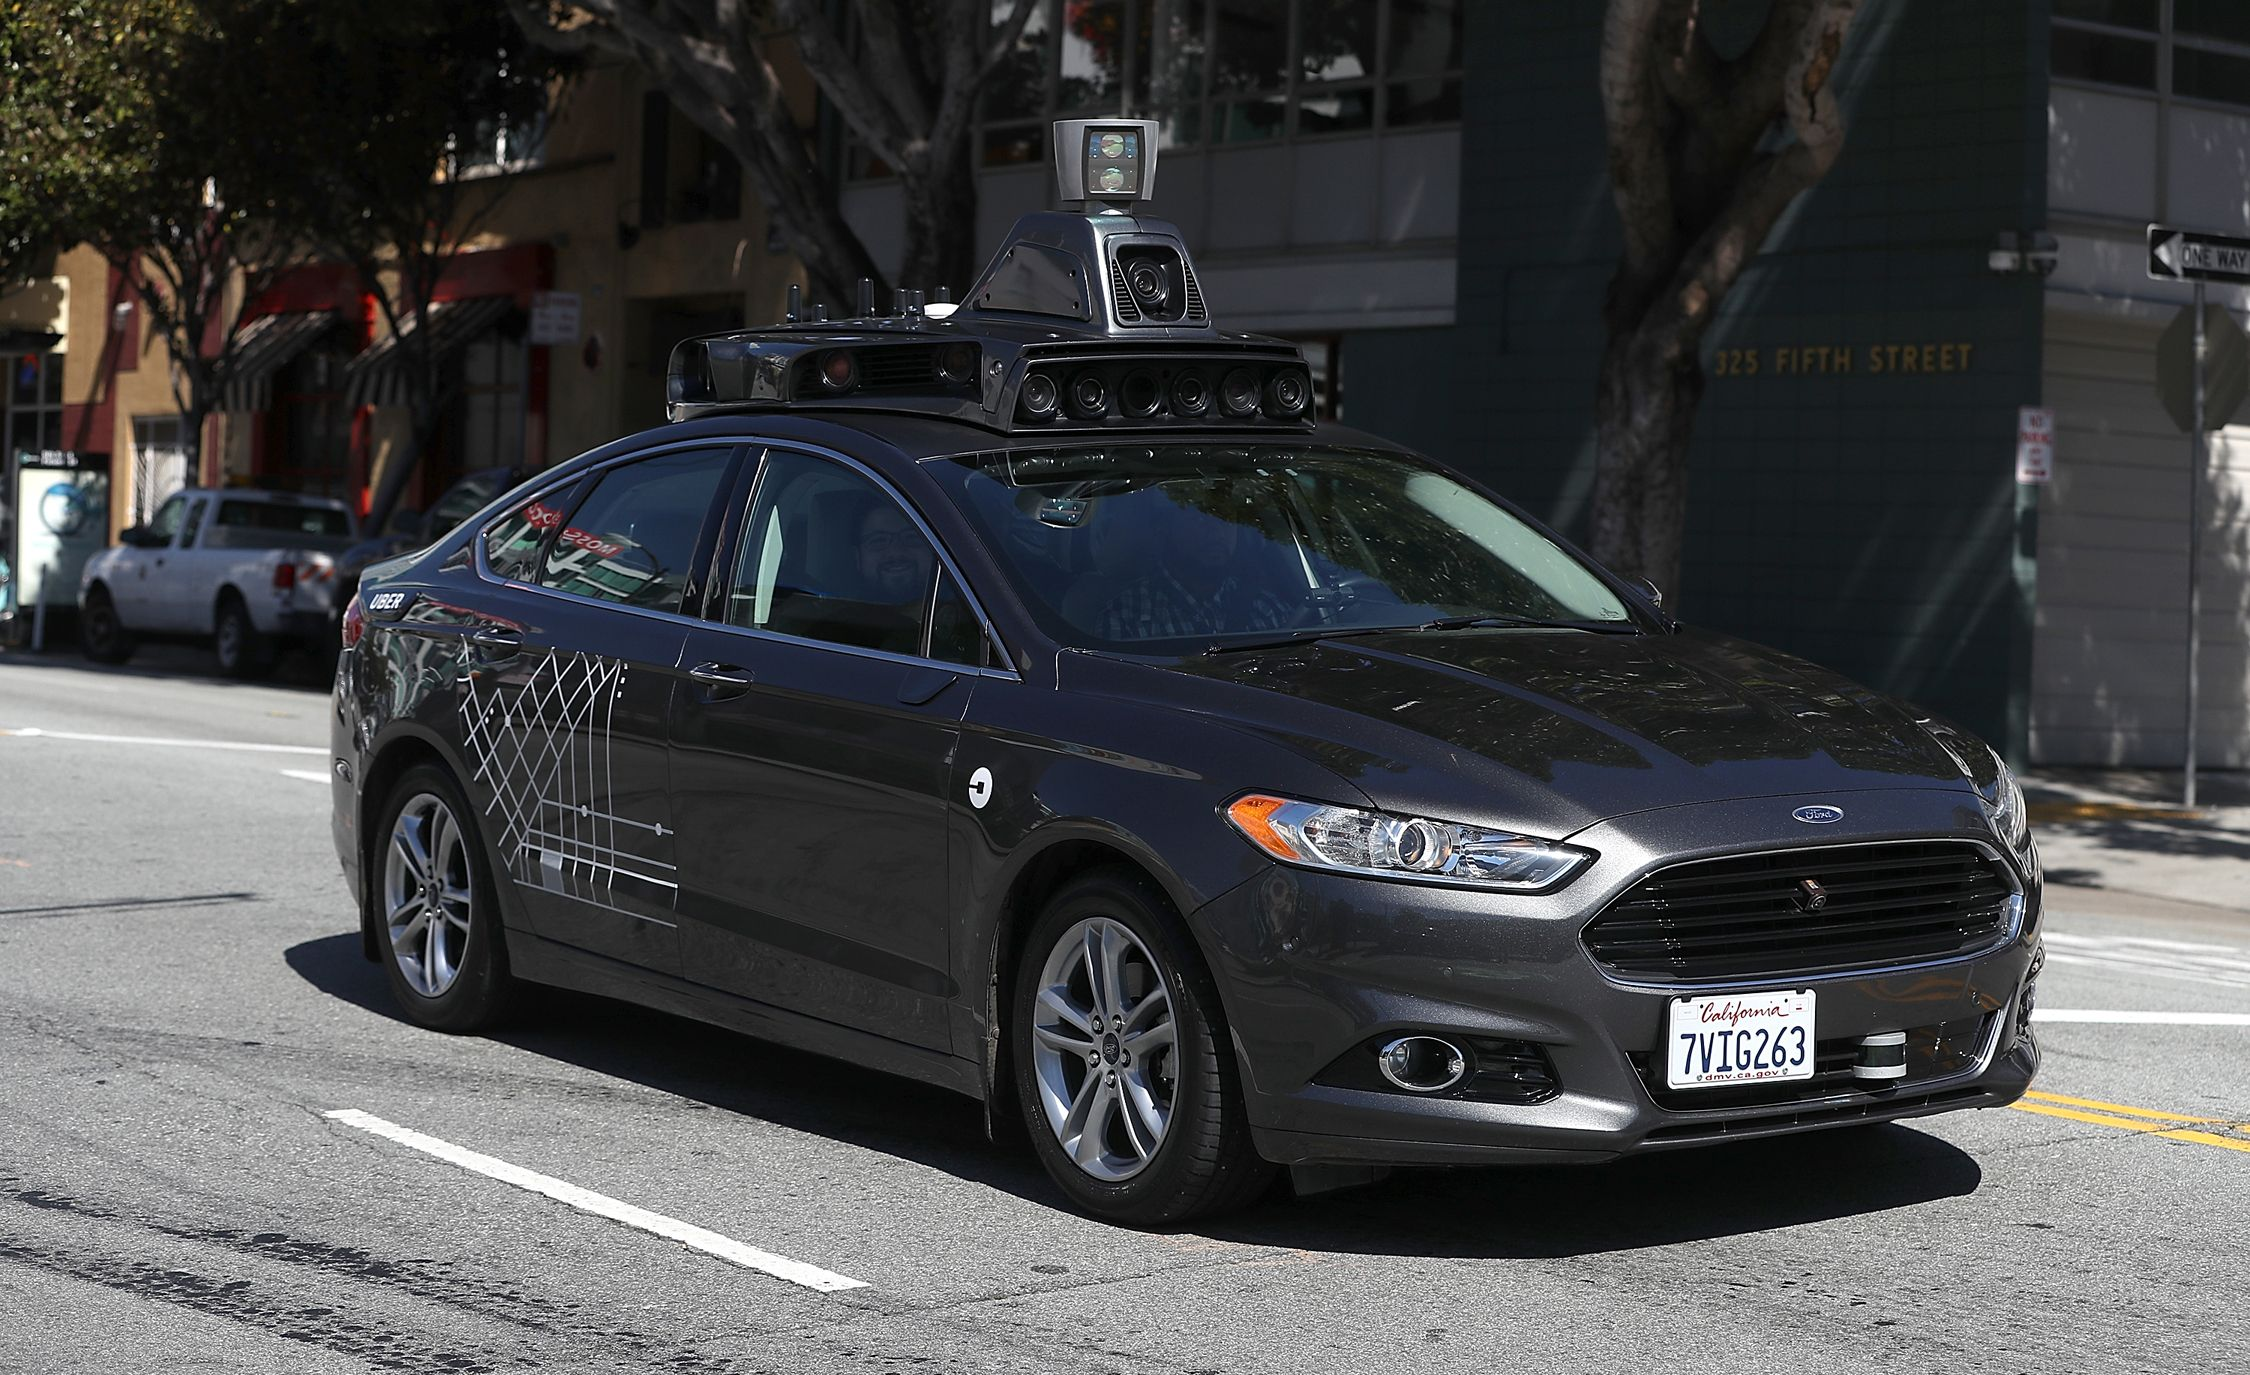 Bureaucracy Stifles Innovation, Even as Driverless Cars Get a Pass